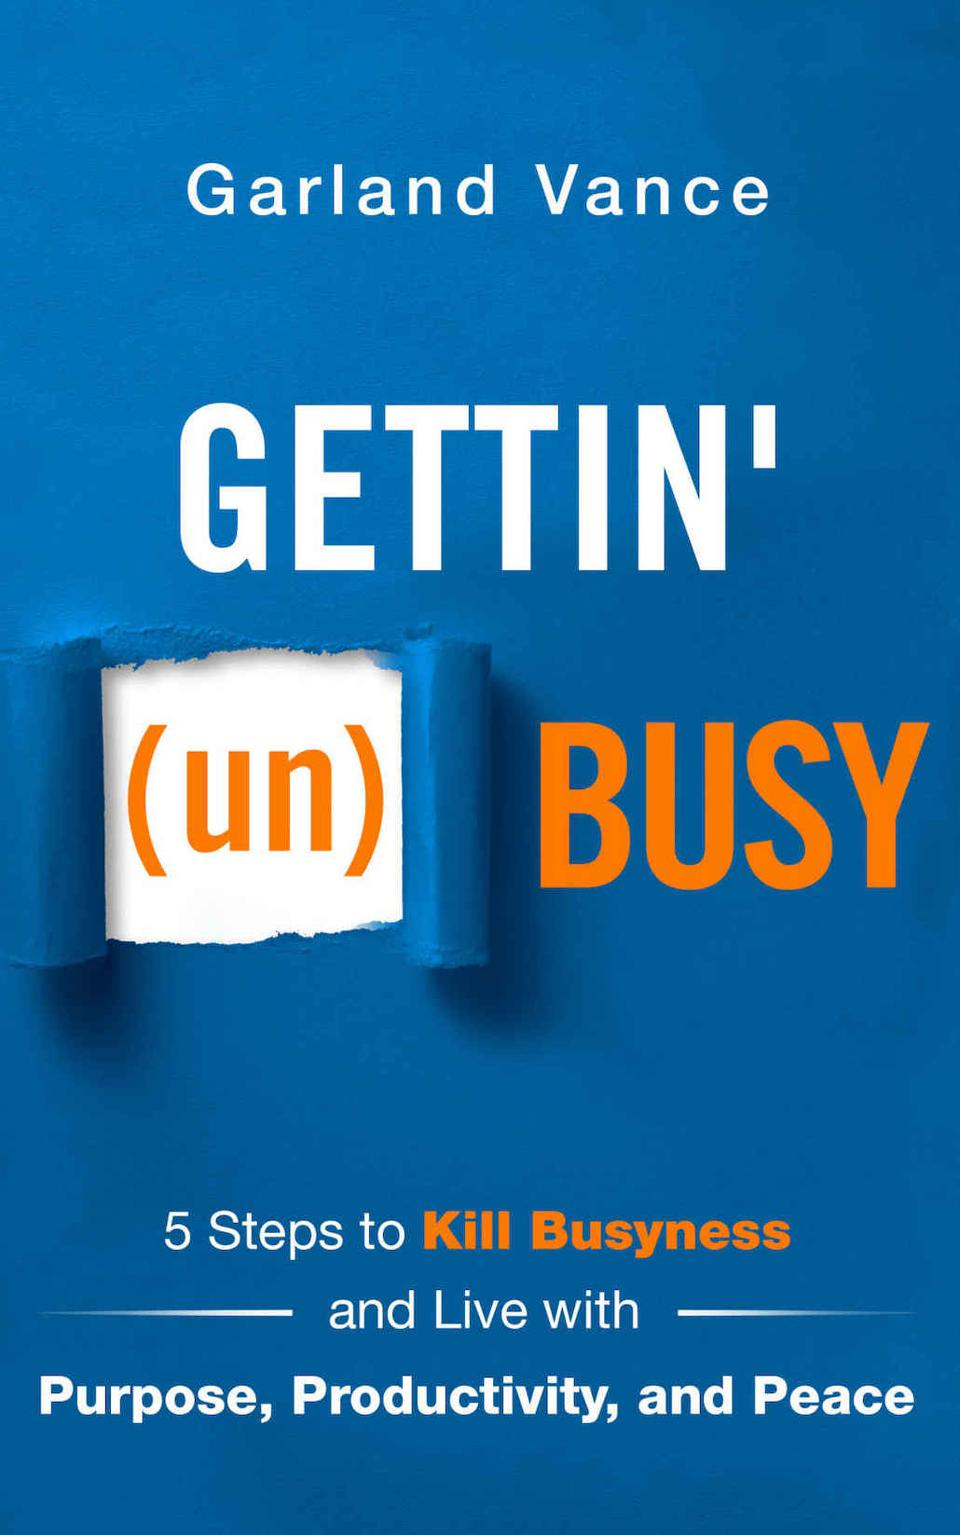 Gettin' (un)Busy: 5 Steps to Kill Busyness and Live with Purpose, Productivity, and Peace by Garland Vance